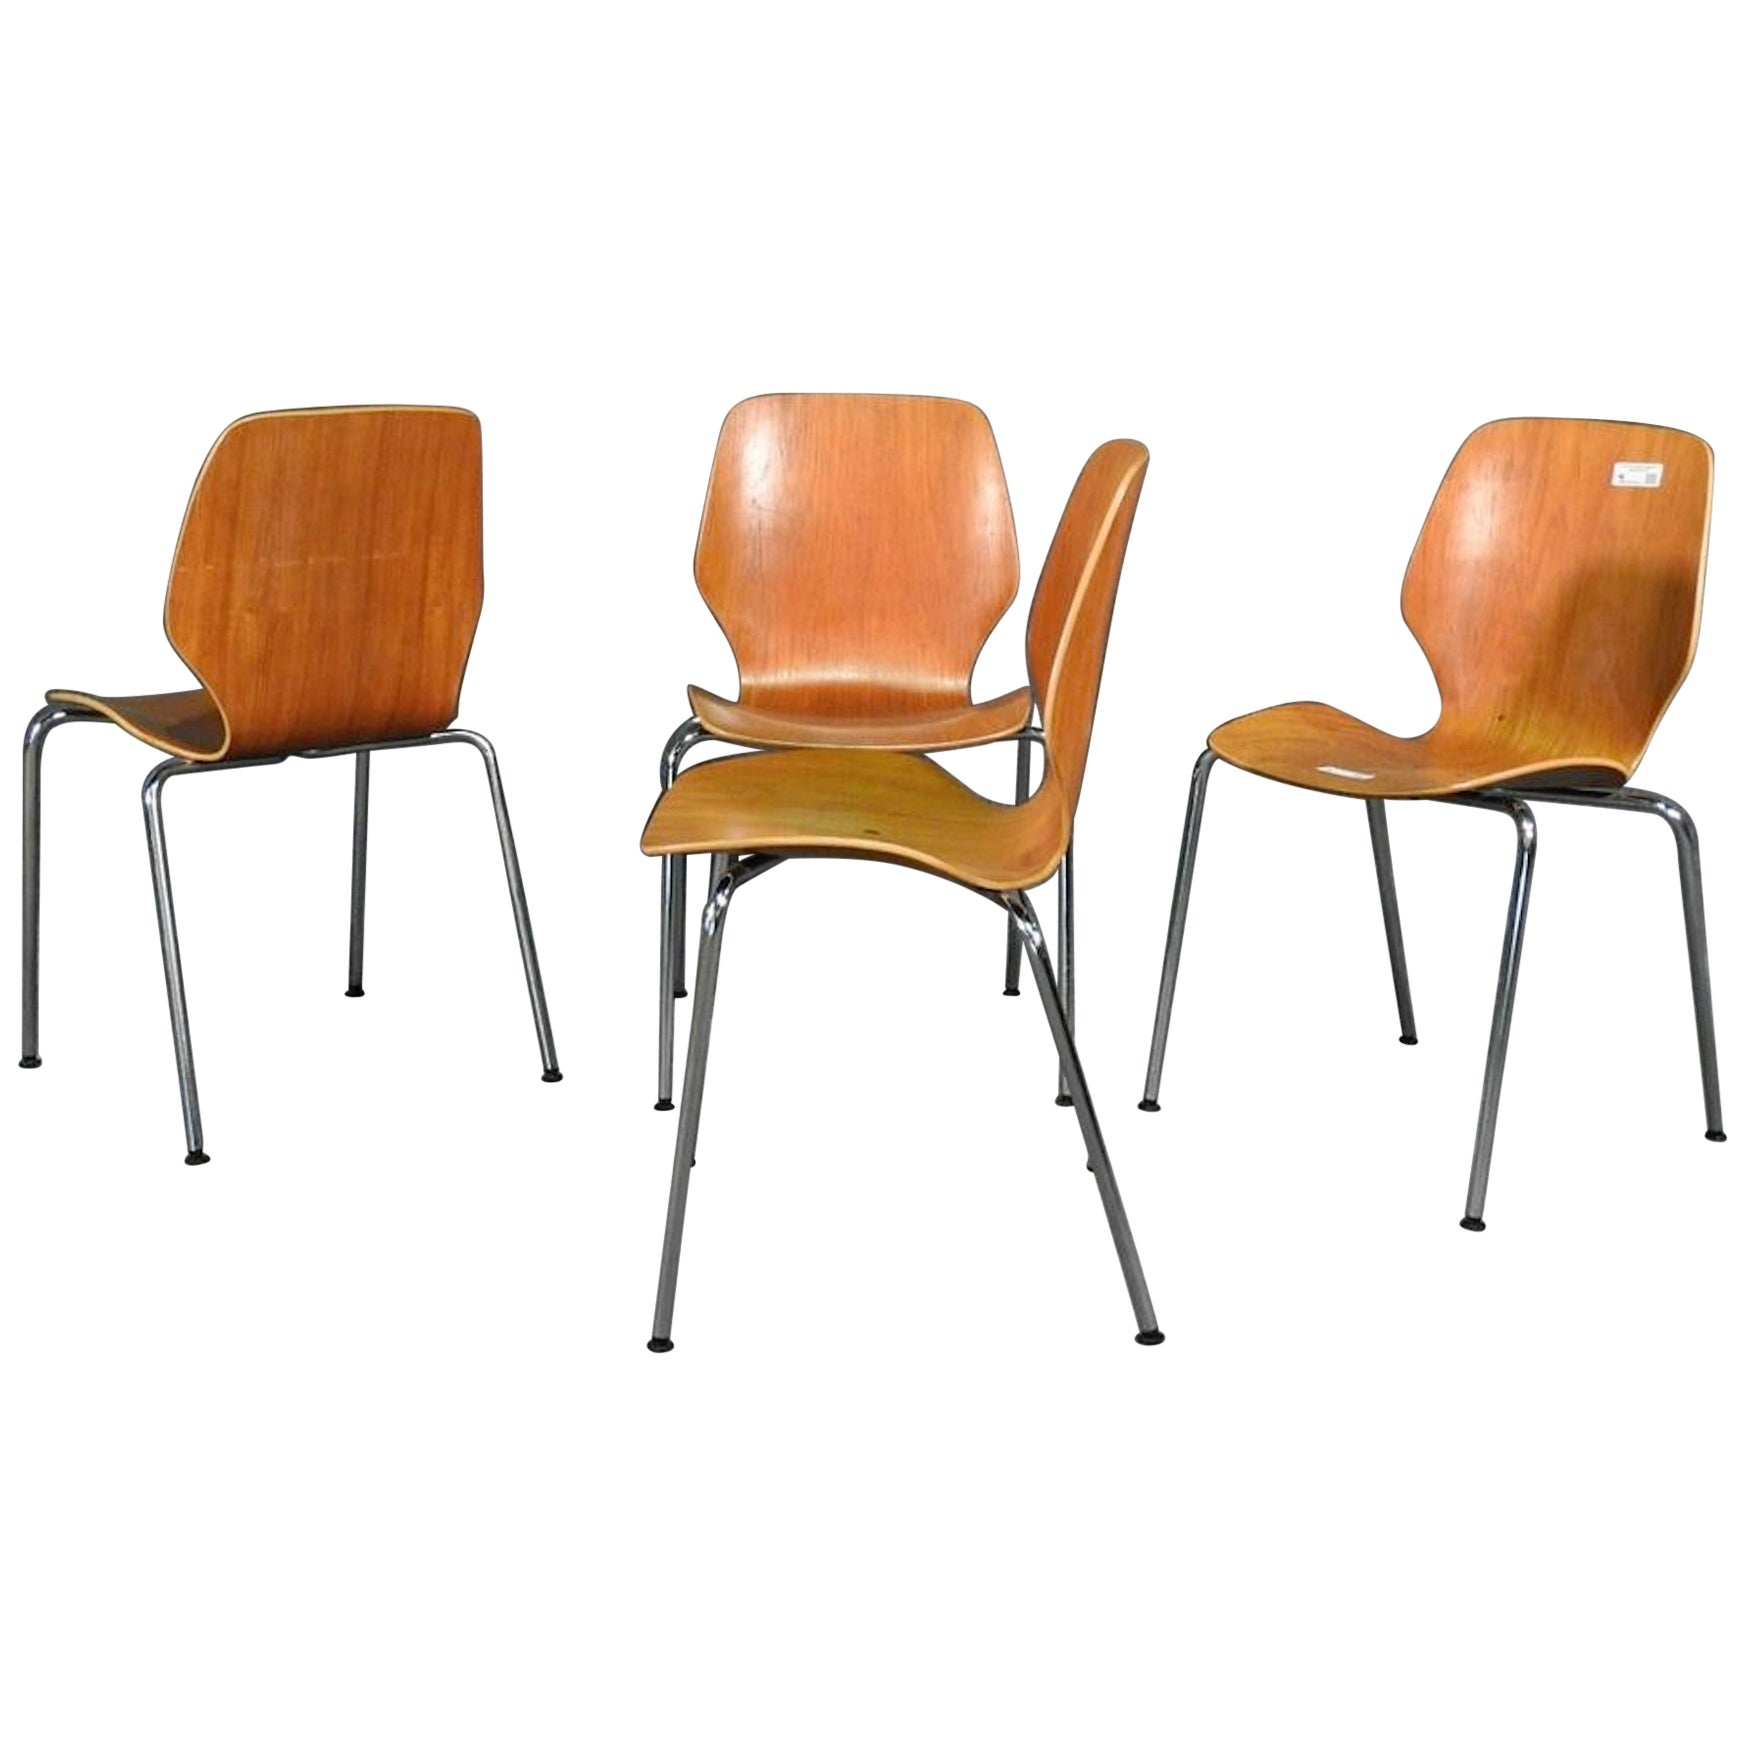 Midcentury Set of Bentwood Chairs